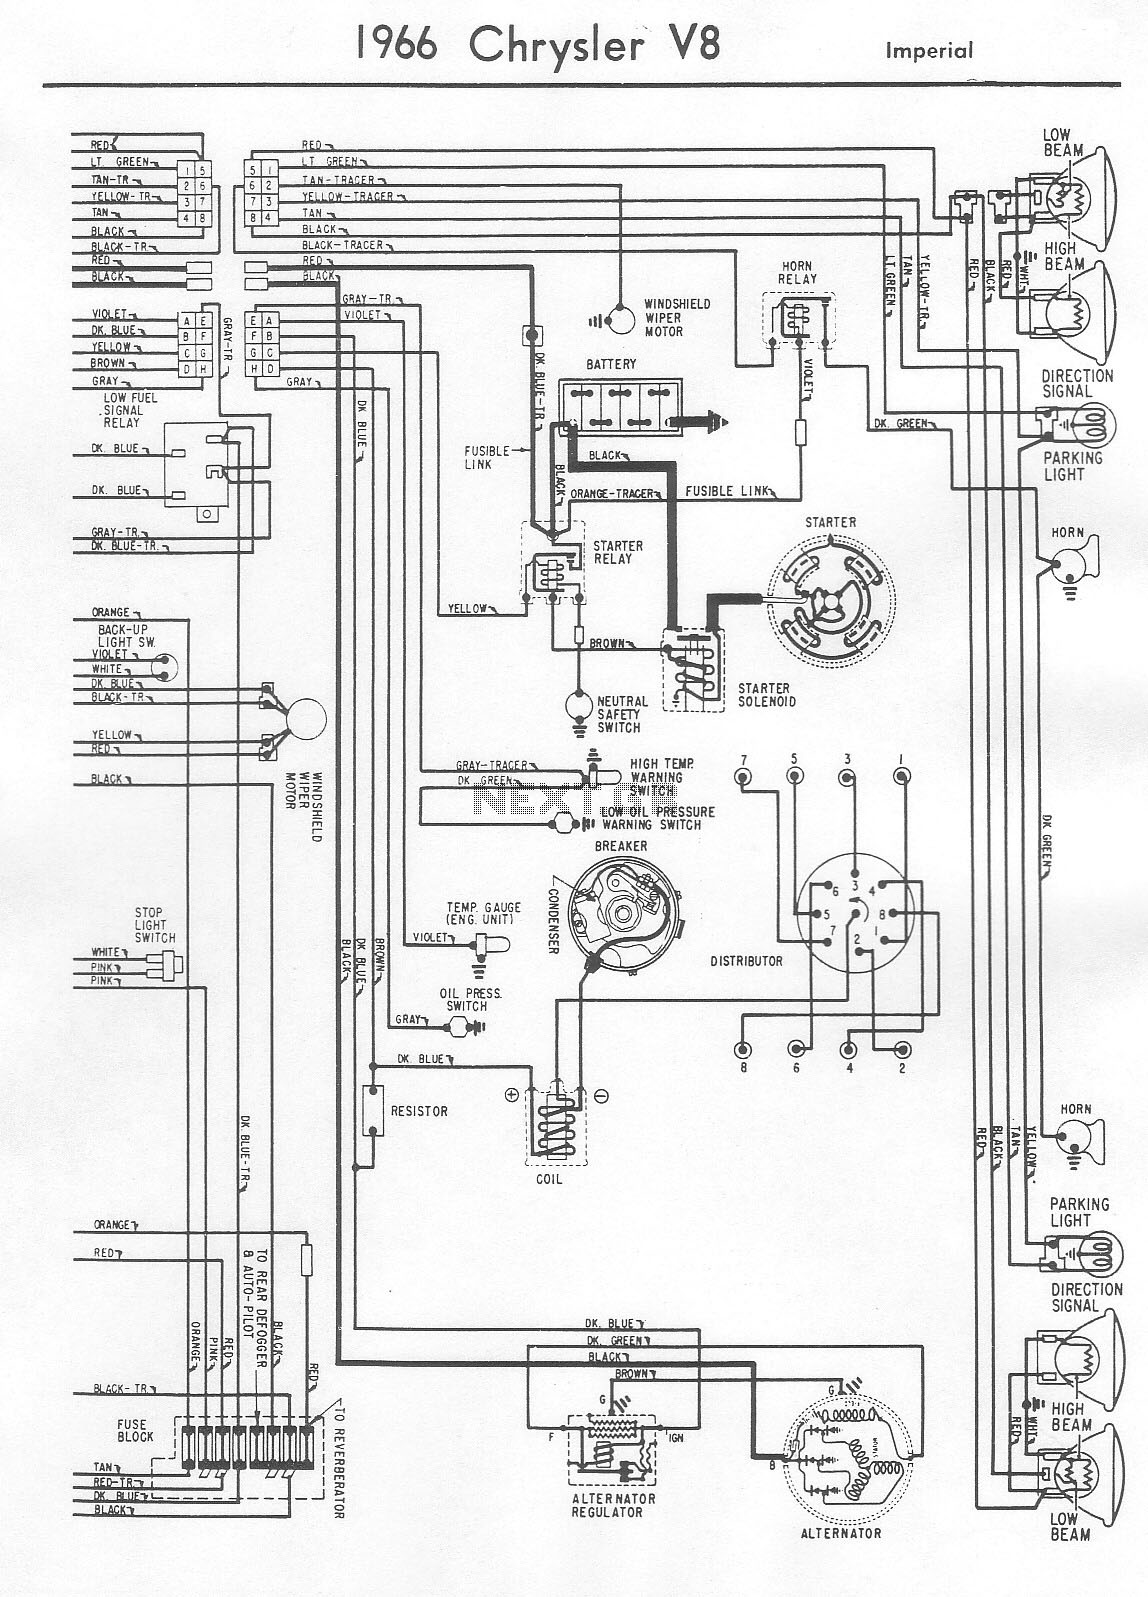 1967 Porsche 912 Wiring Diagrams Schematics Mustang Center Console Free Download Diagram Rh Alzaimunited Com 1968 Horn